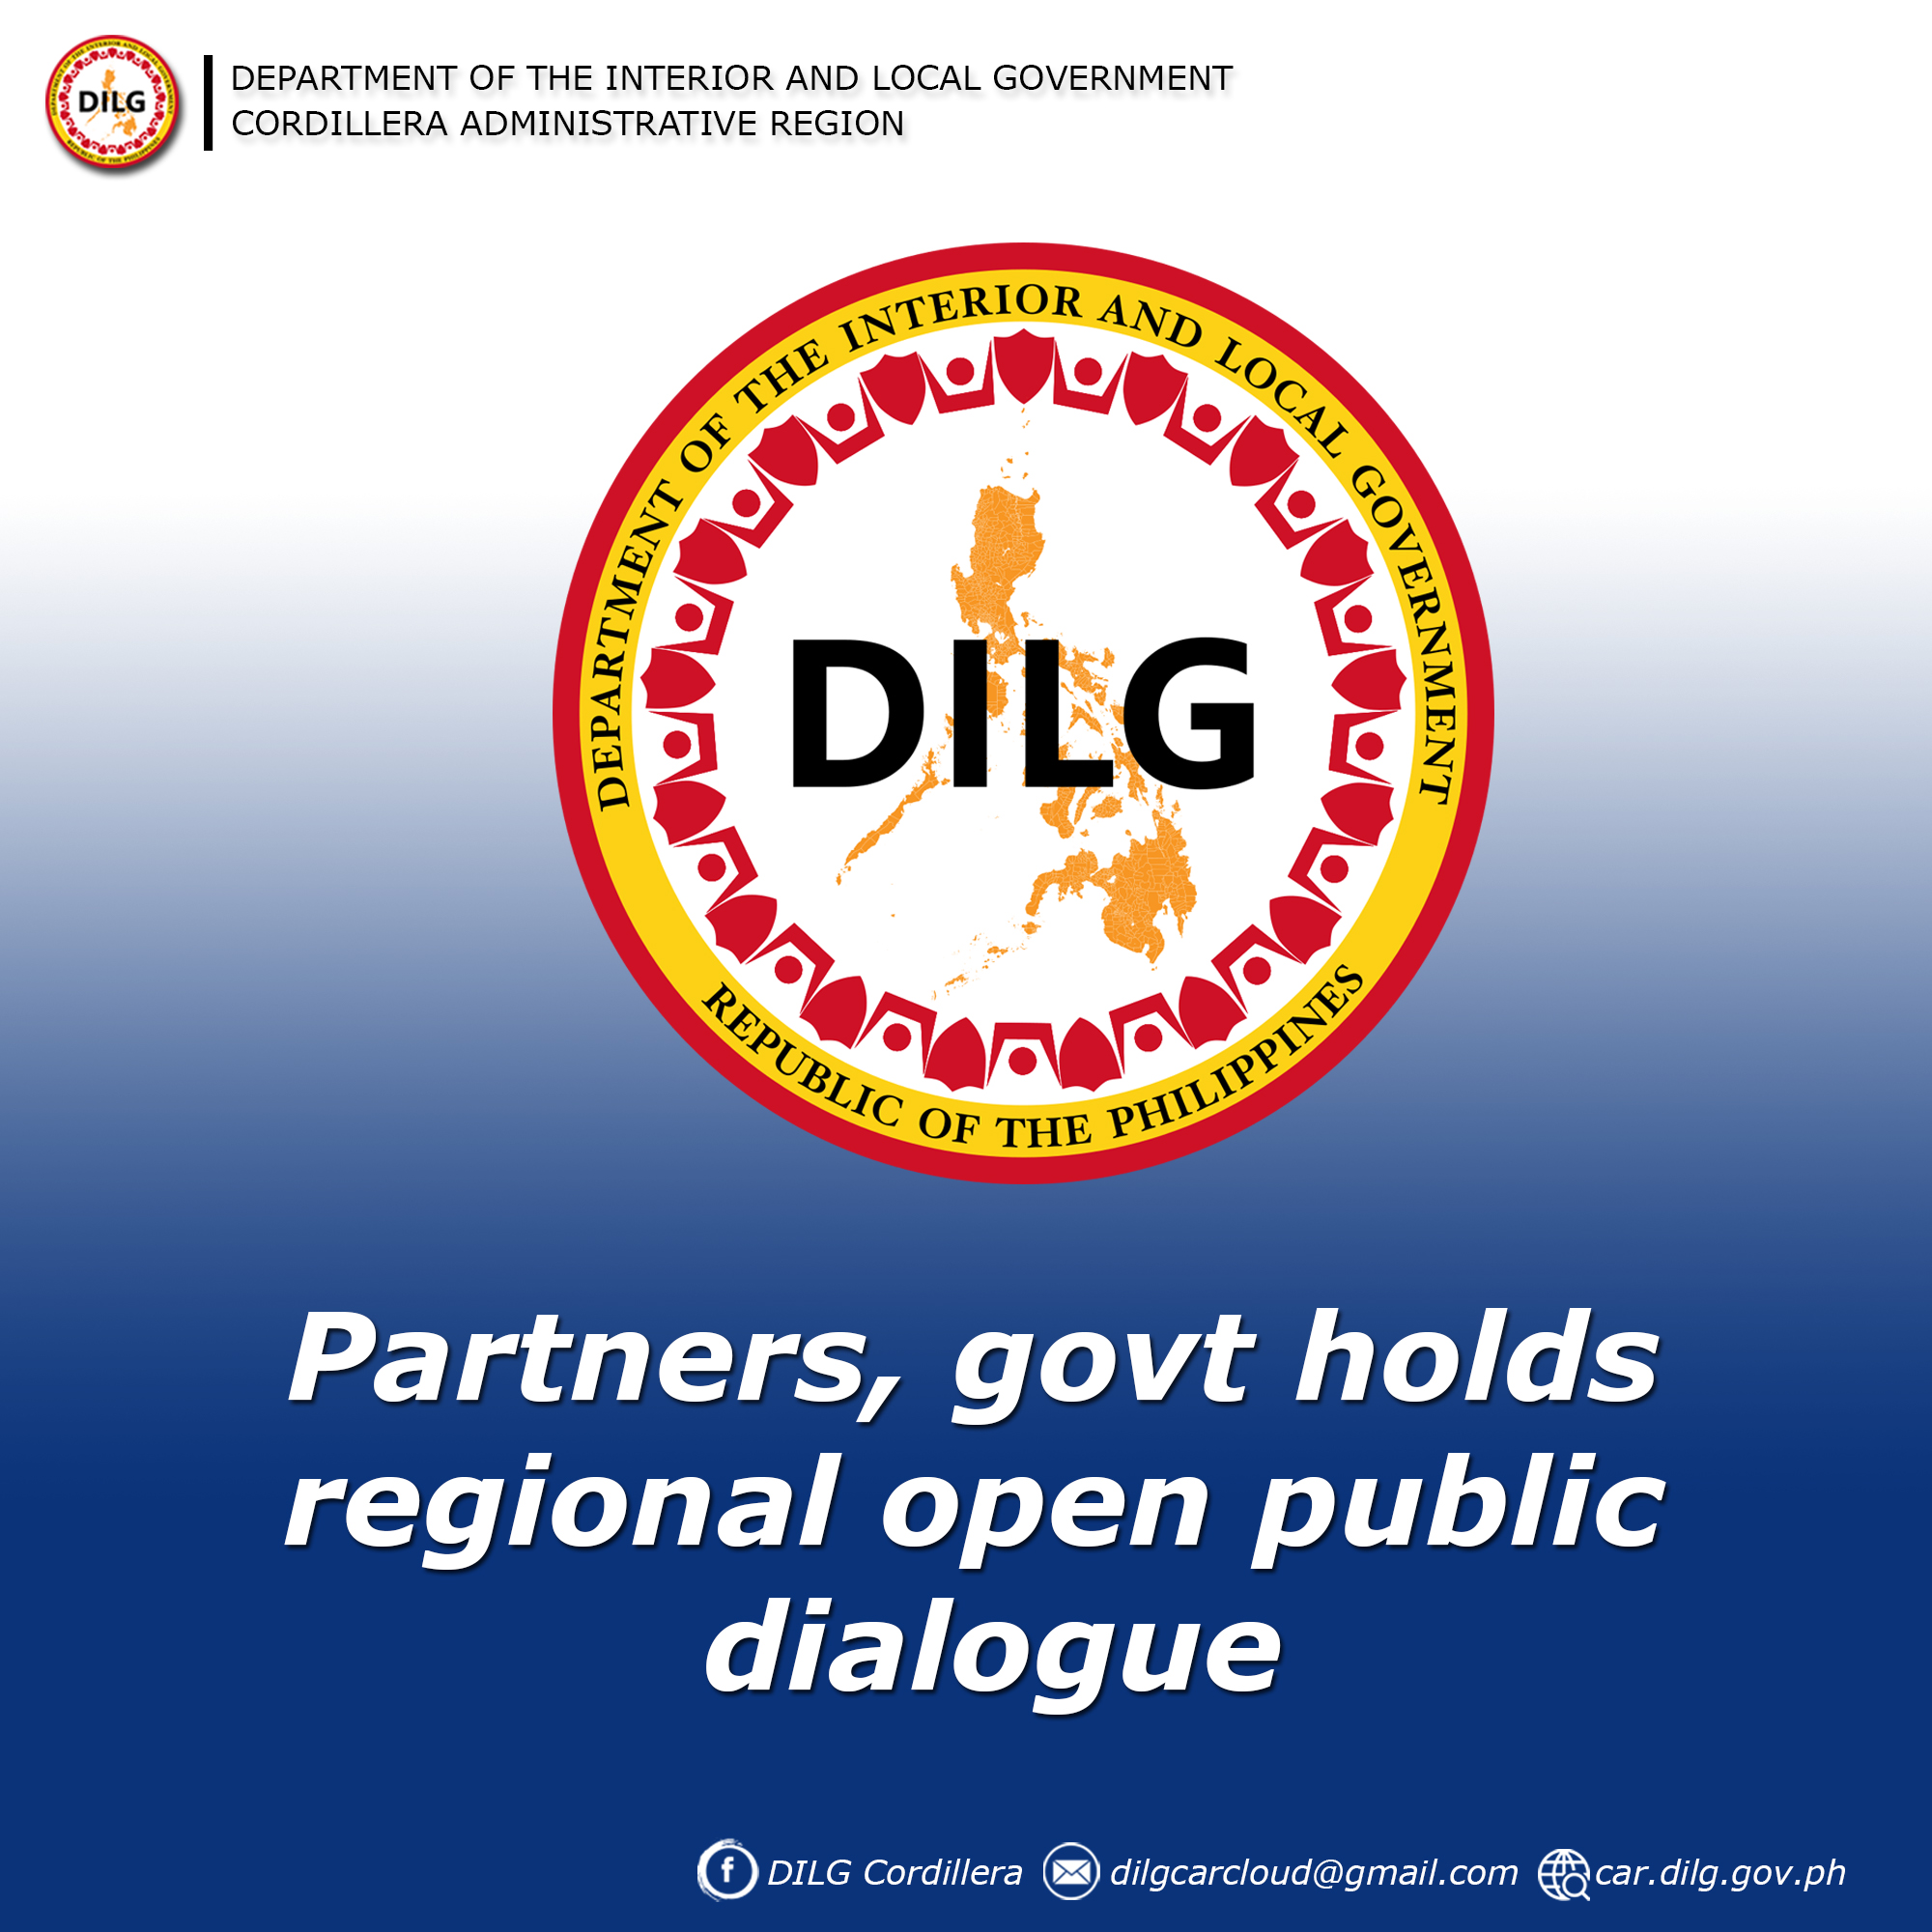 Partners, govt holds regional open public dialogue